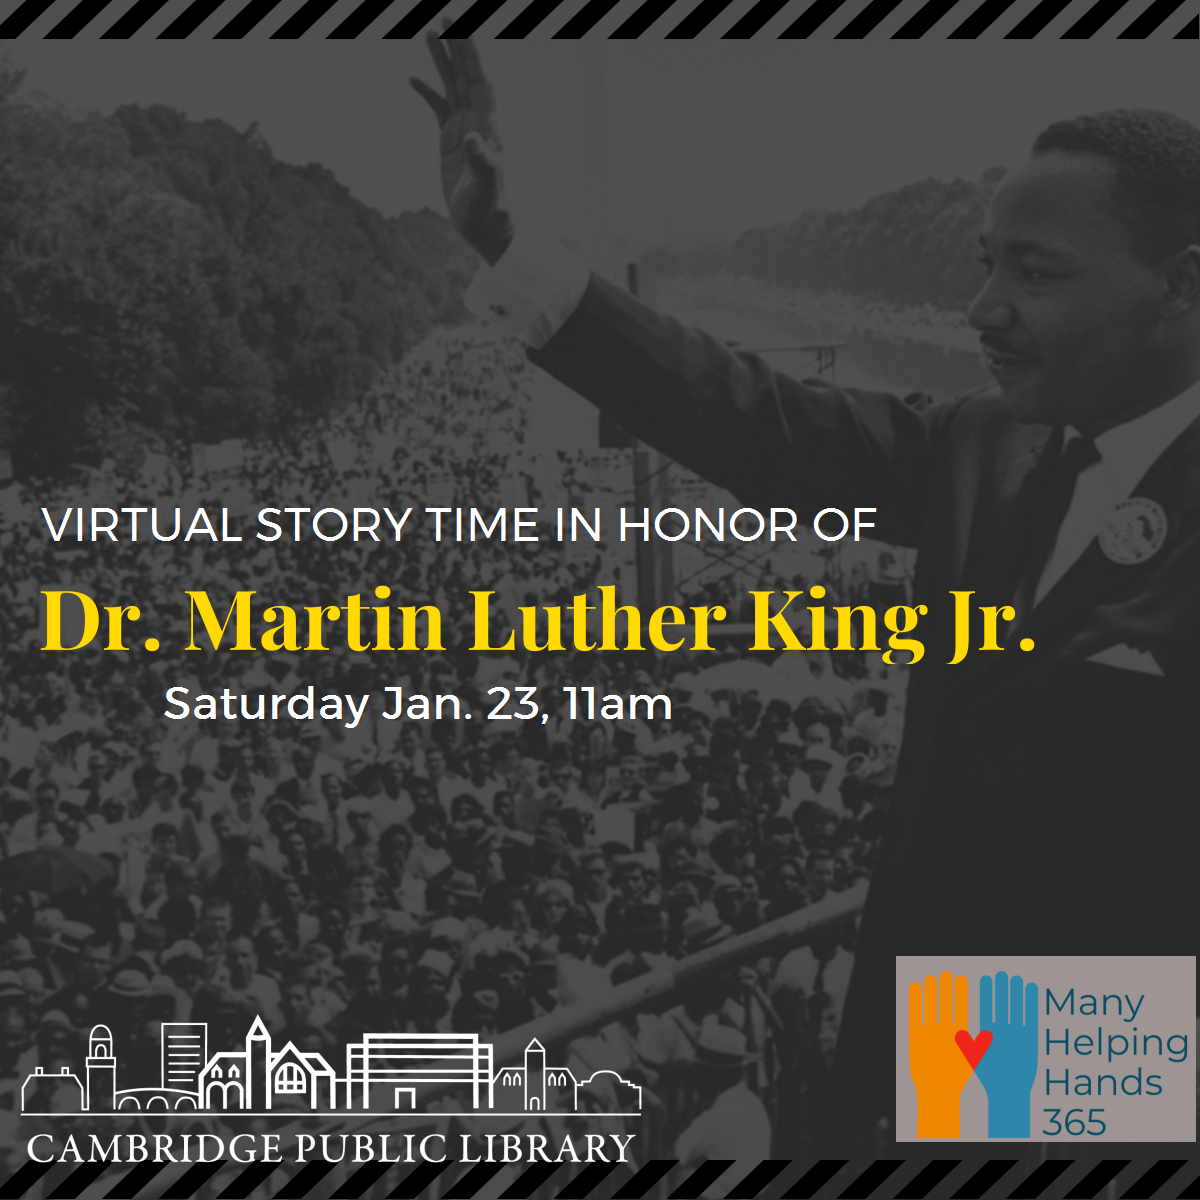 Virtual Story Time in honor of Dr. Martin Luther King Jr.